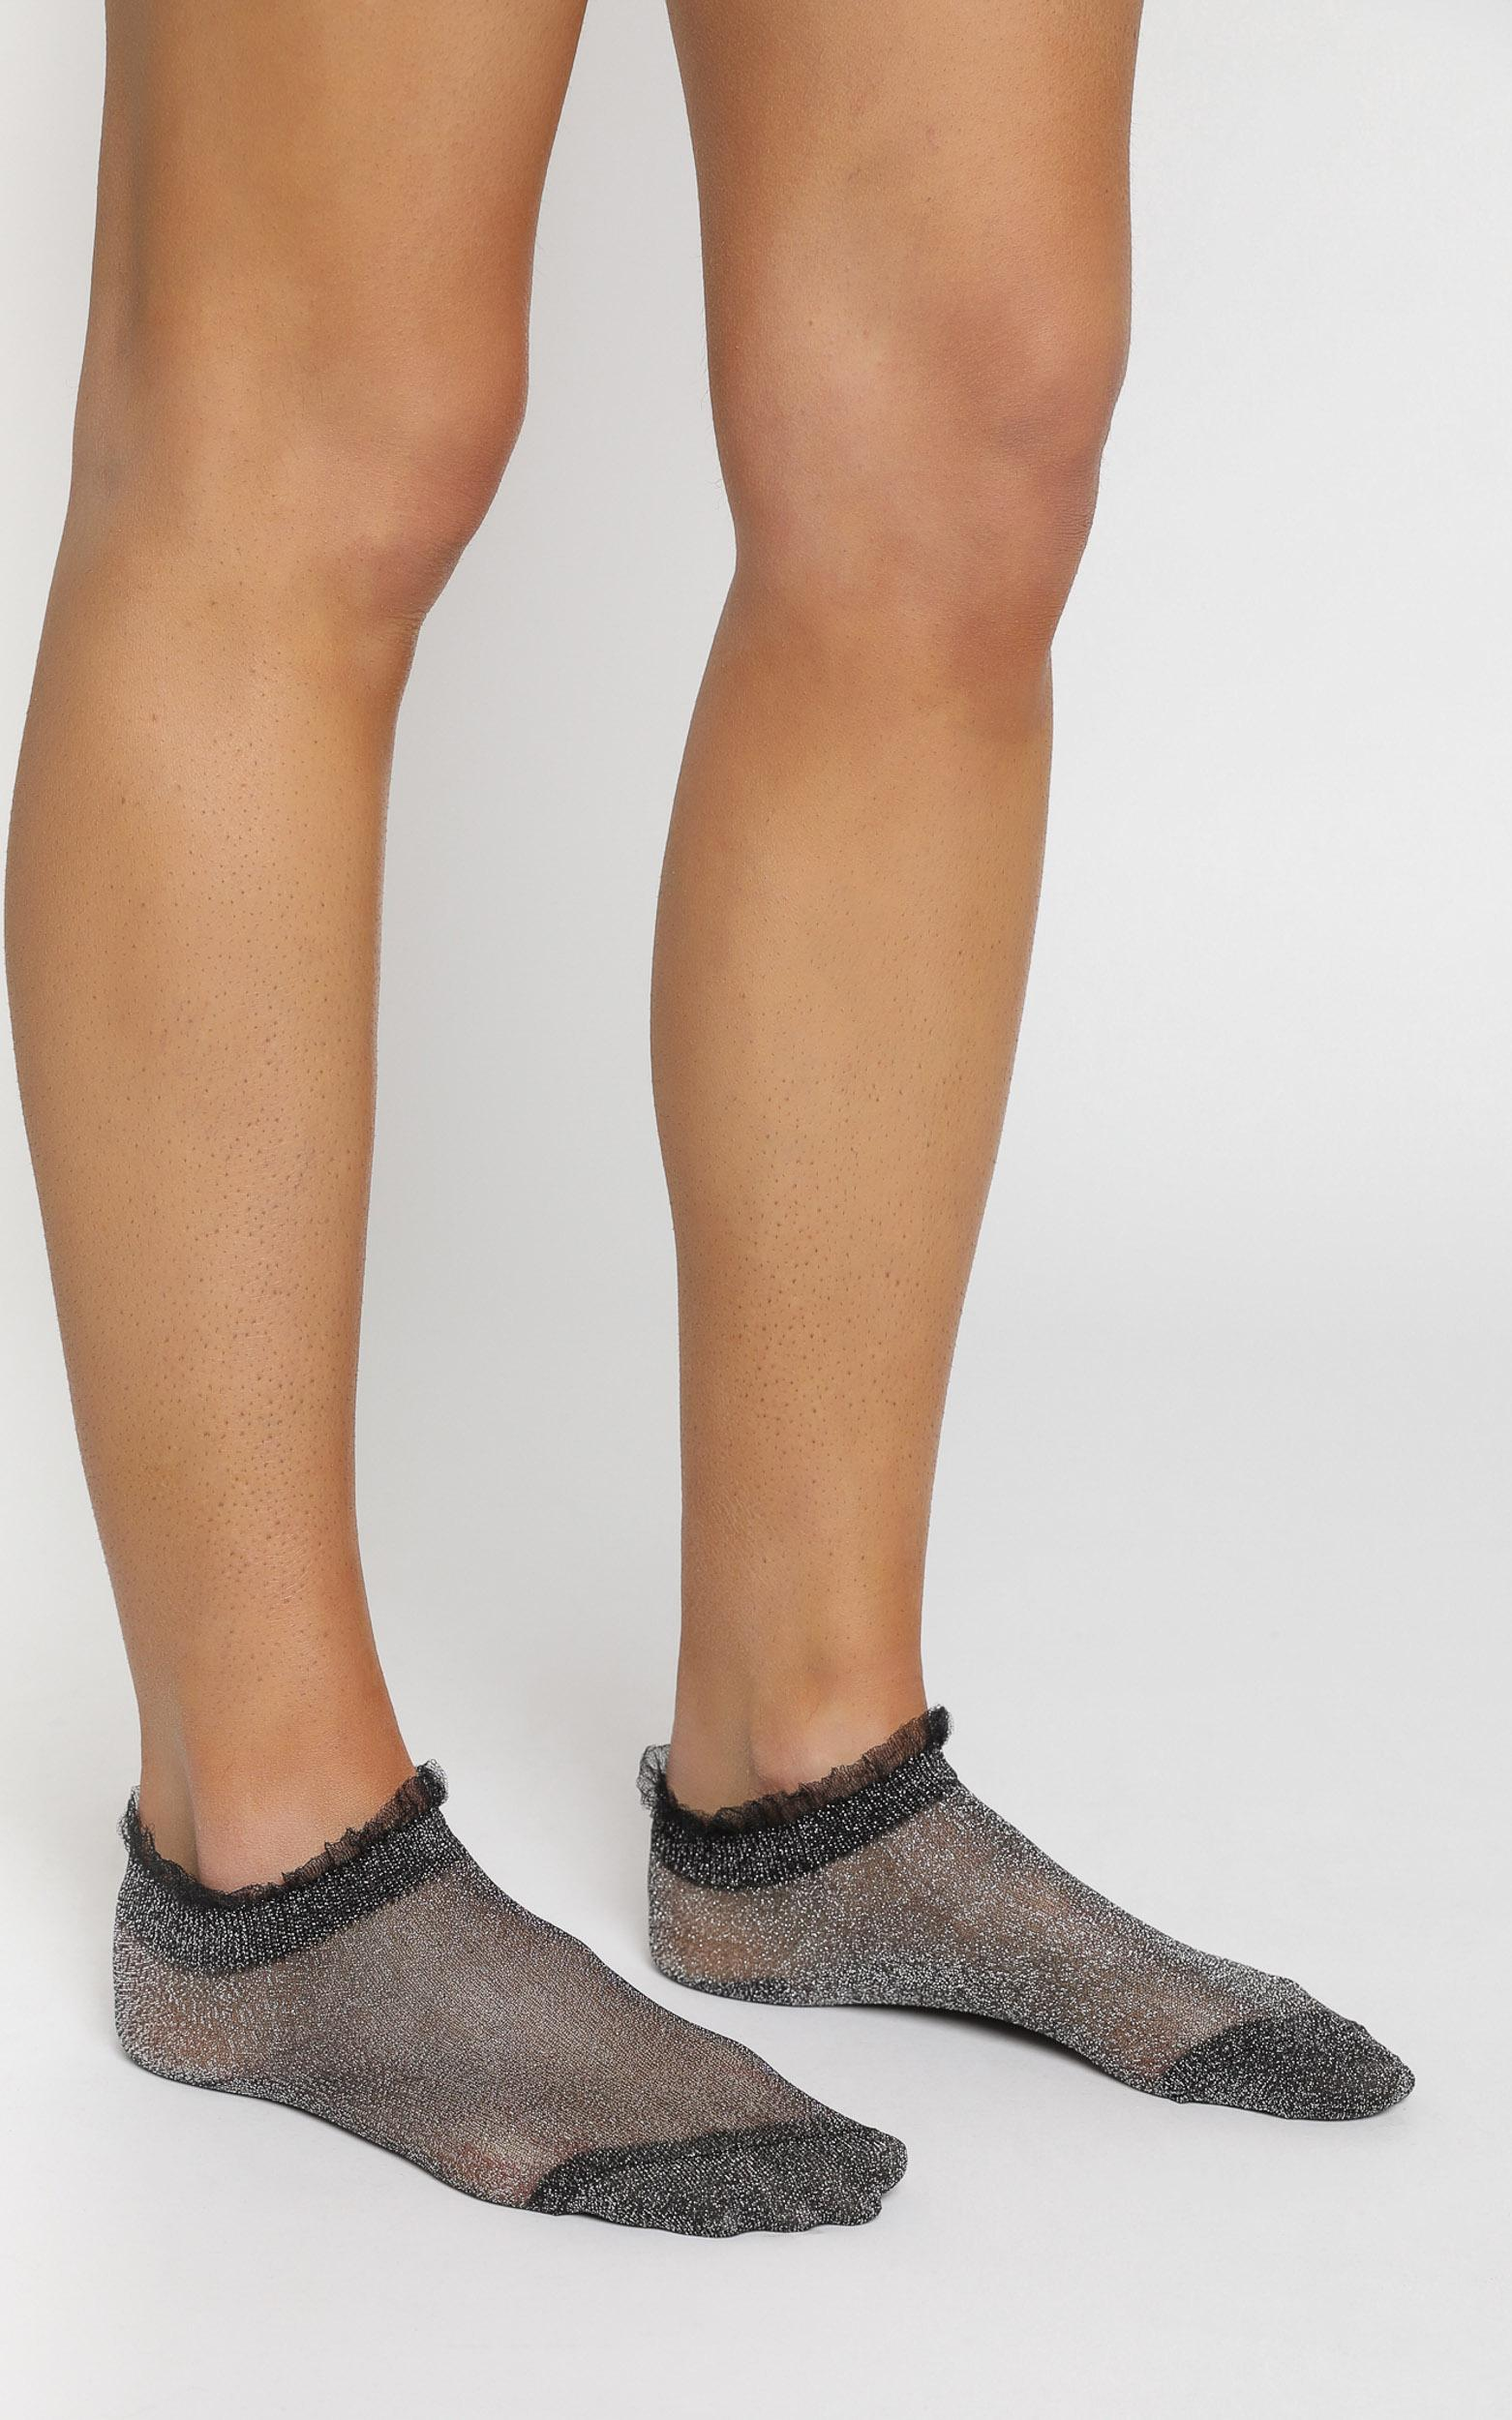 Lizzy Star Glitter Socks in Silver Black, , hi-res image number null